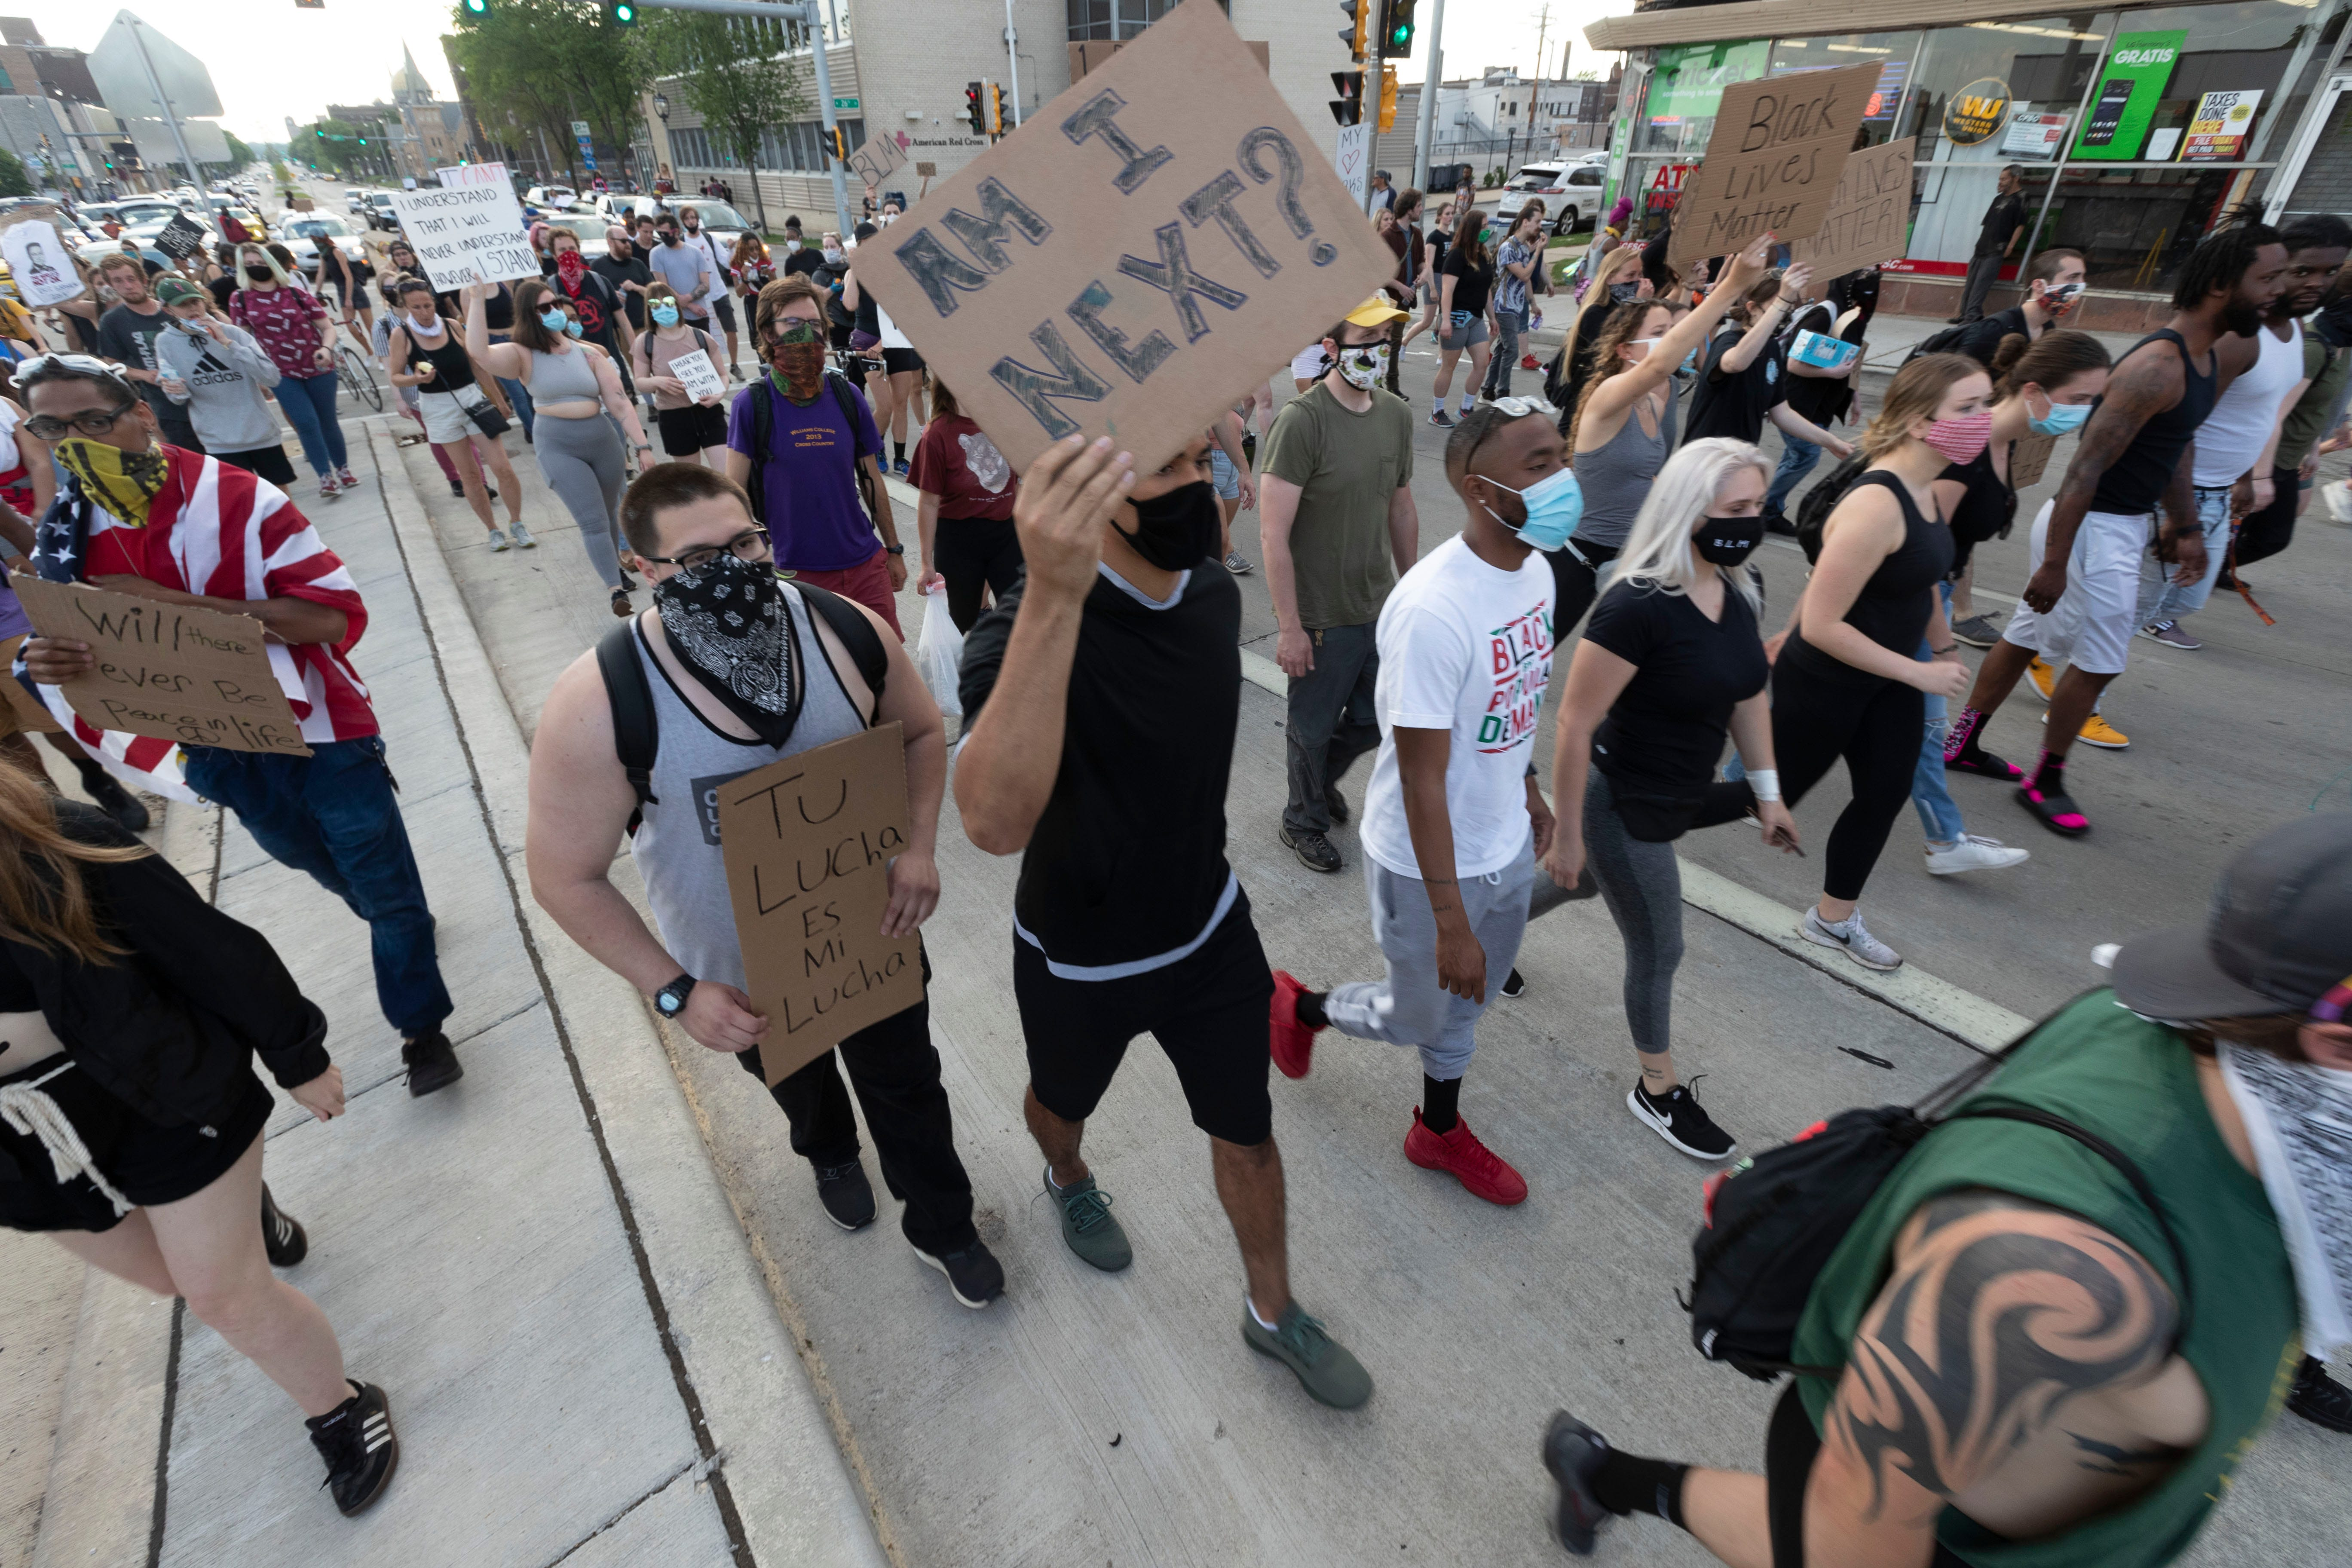 About 200 marchers make their way east on Wisconsin Ave. as part of a Black Lives Matter protest Friday, June 5, 2020 Milwaukee, Wis.